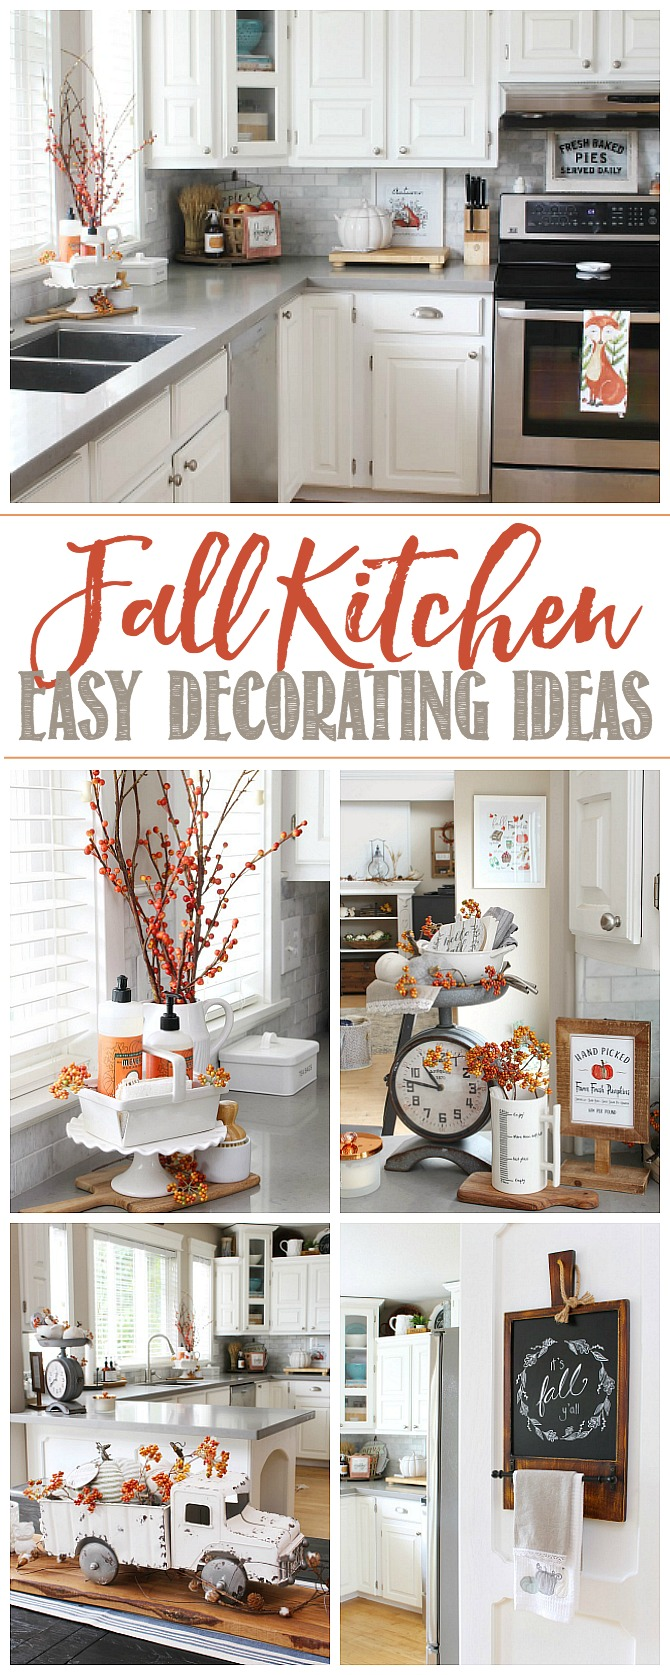 Collage of fall kitchen decorating ideas in a white kitchen.